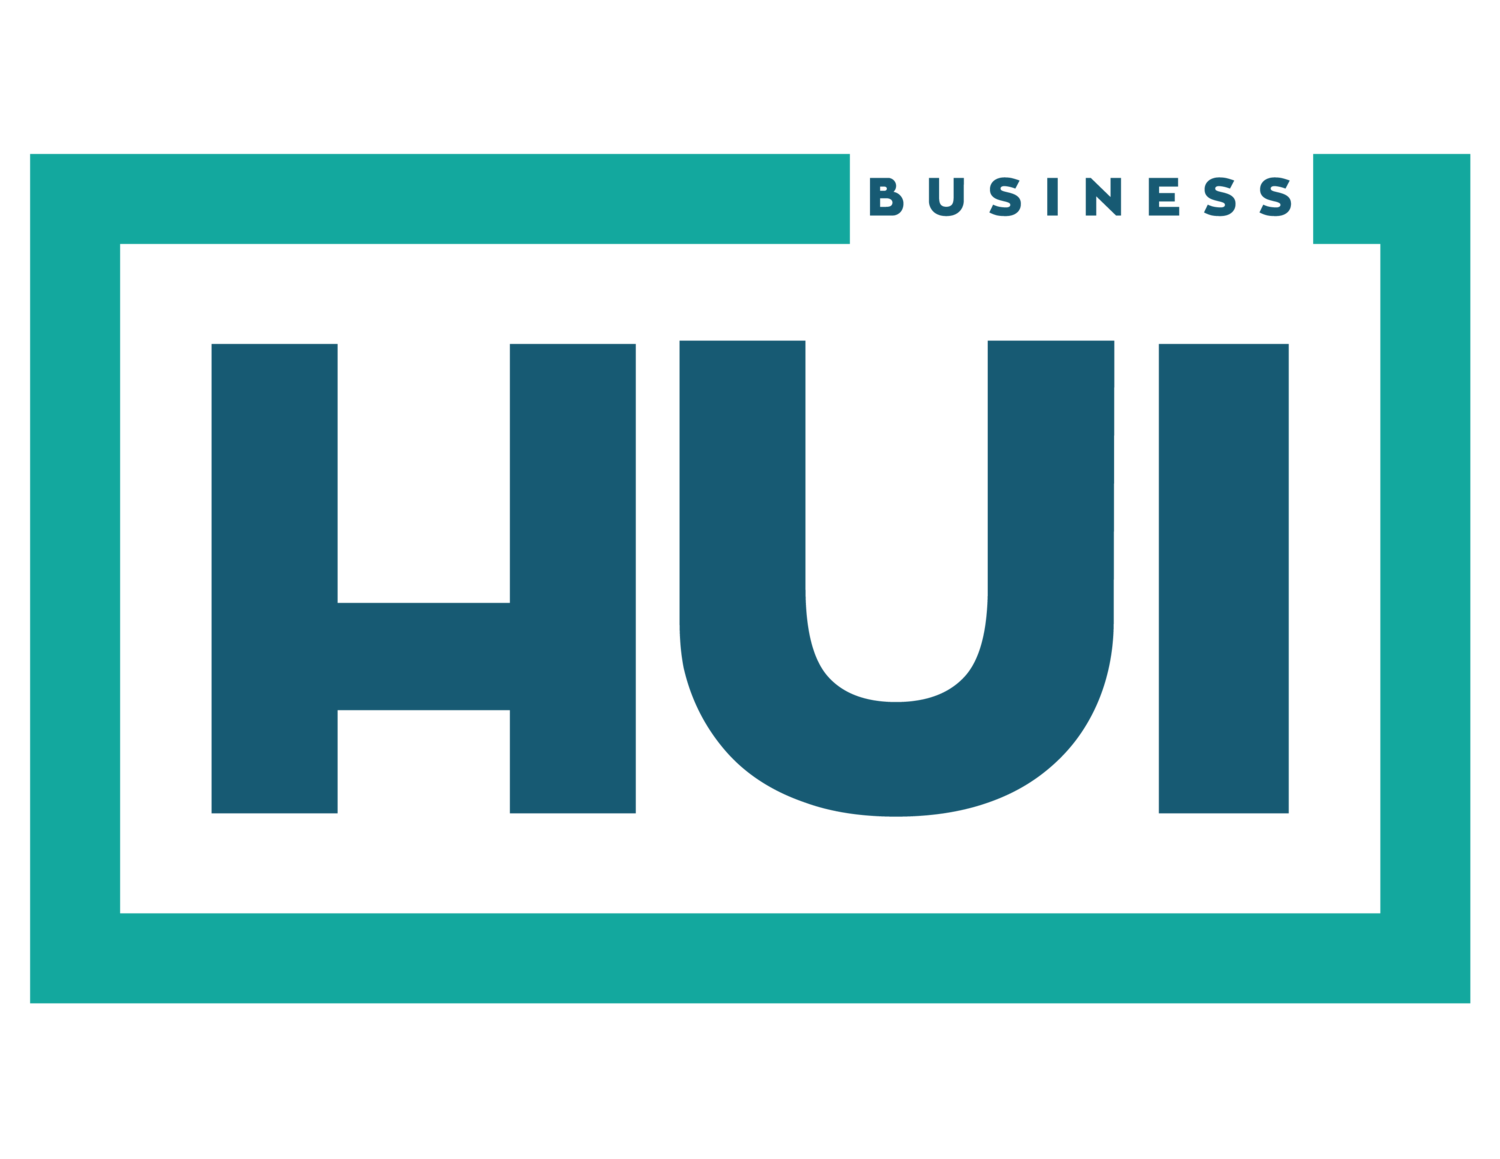 Business Hui